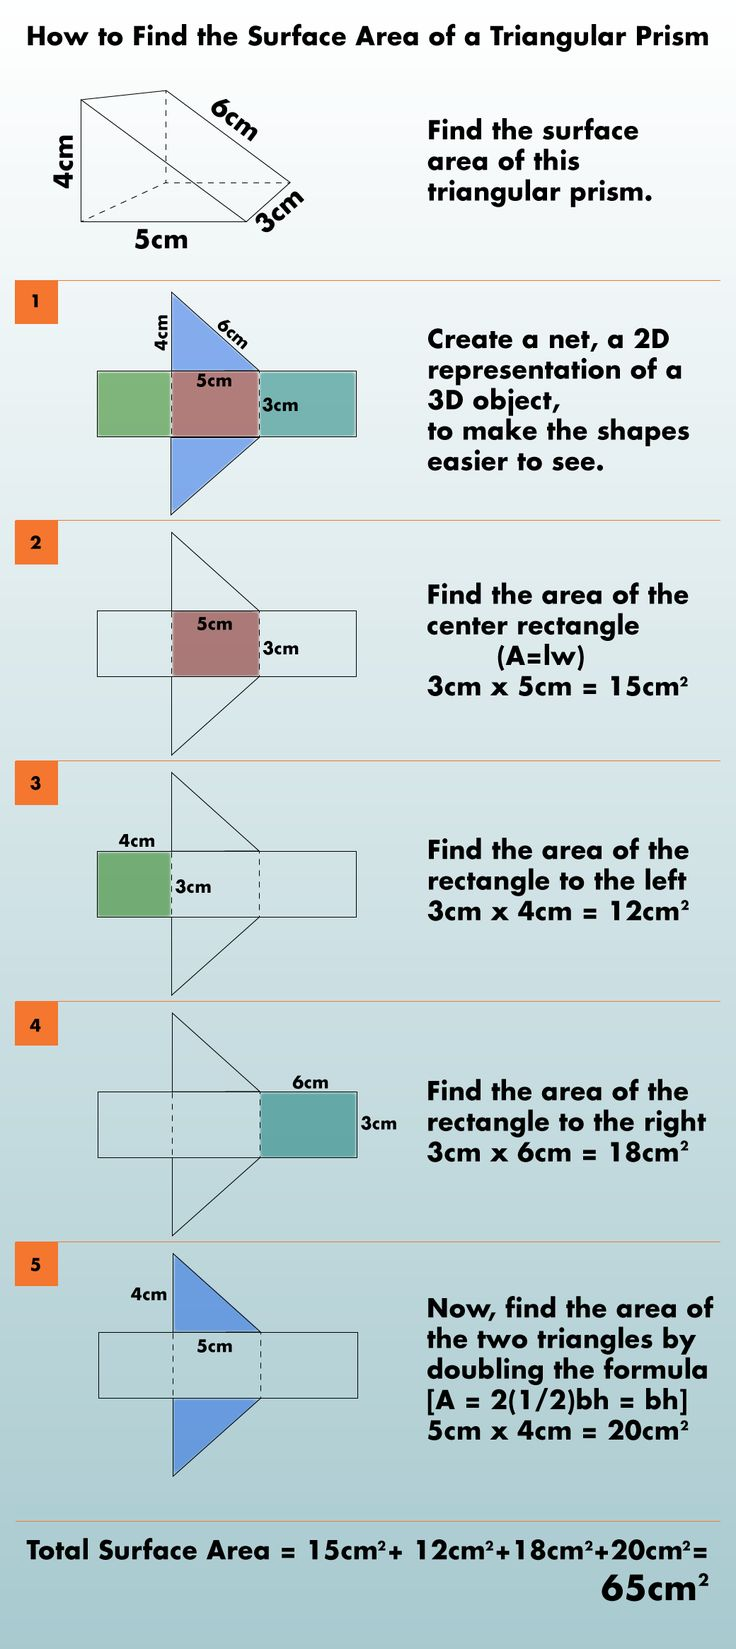 How to find the surface area of rightangled and isosceles